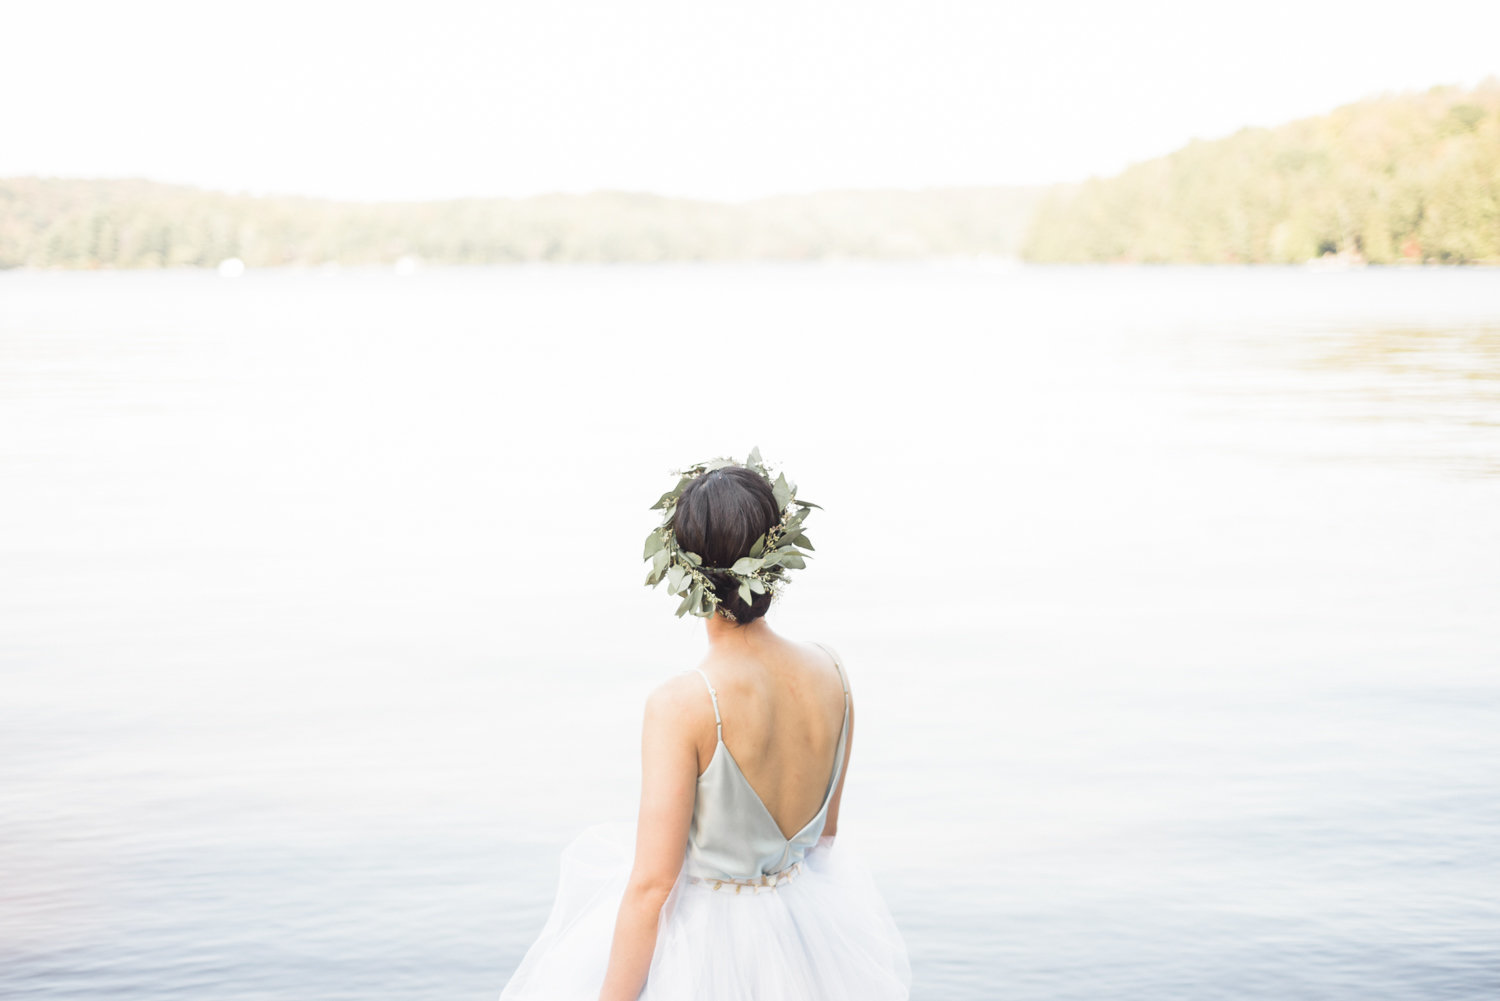 Bride with green flower crown looking out at a lake in Muskoka